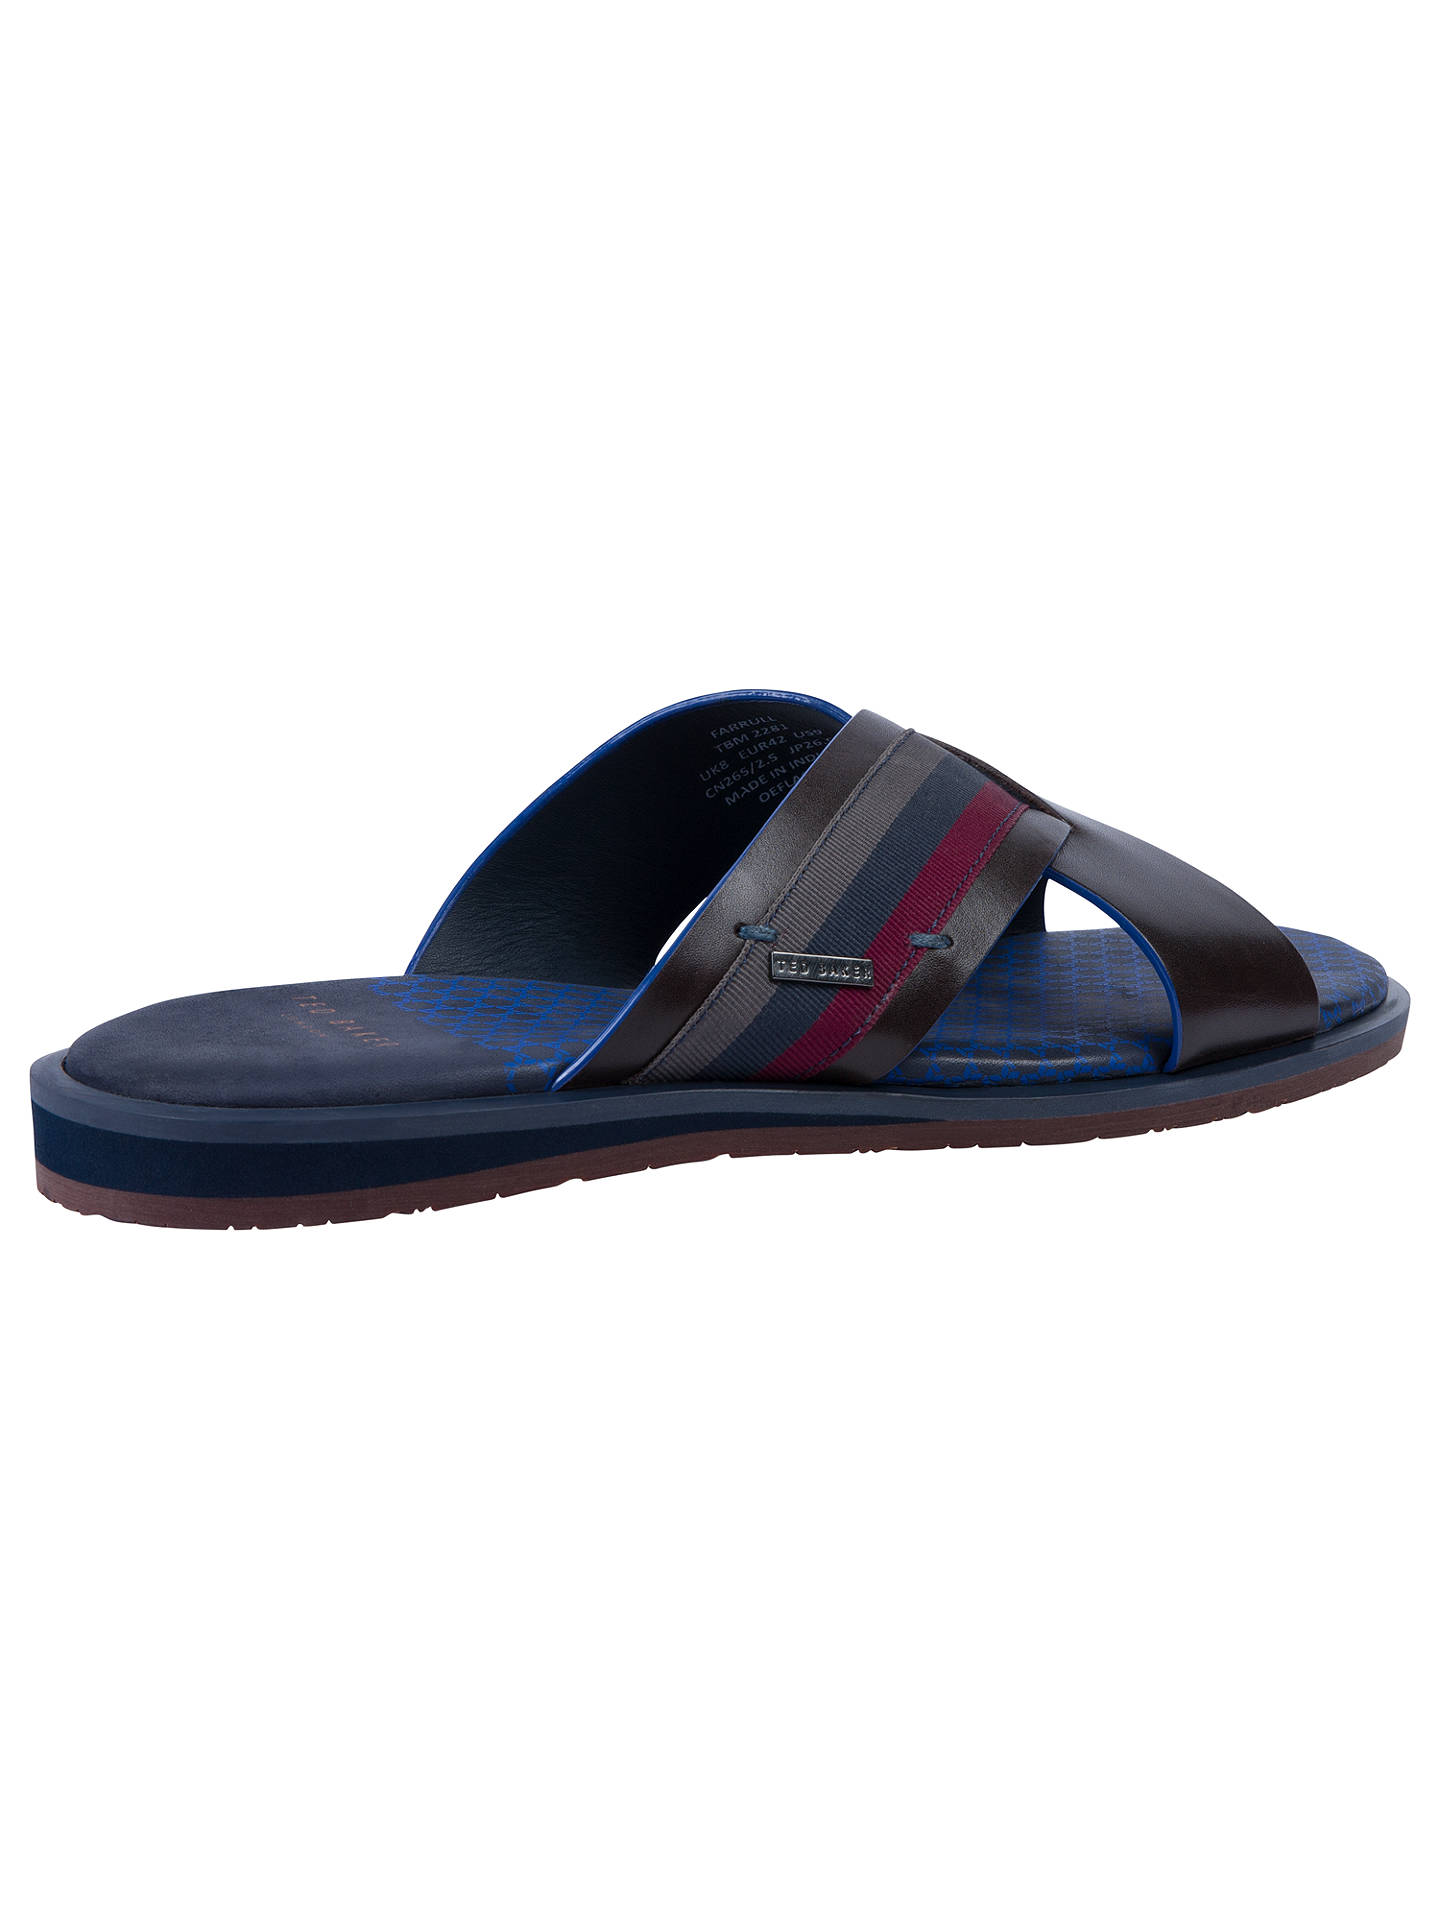 438a3dd0d Ted Baker Farrull Cross Over Sandals at John Lewis   Partners